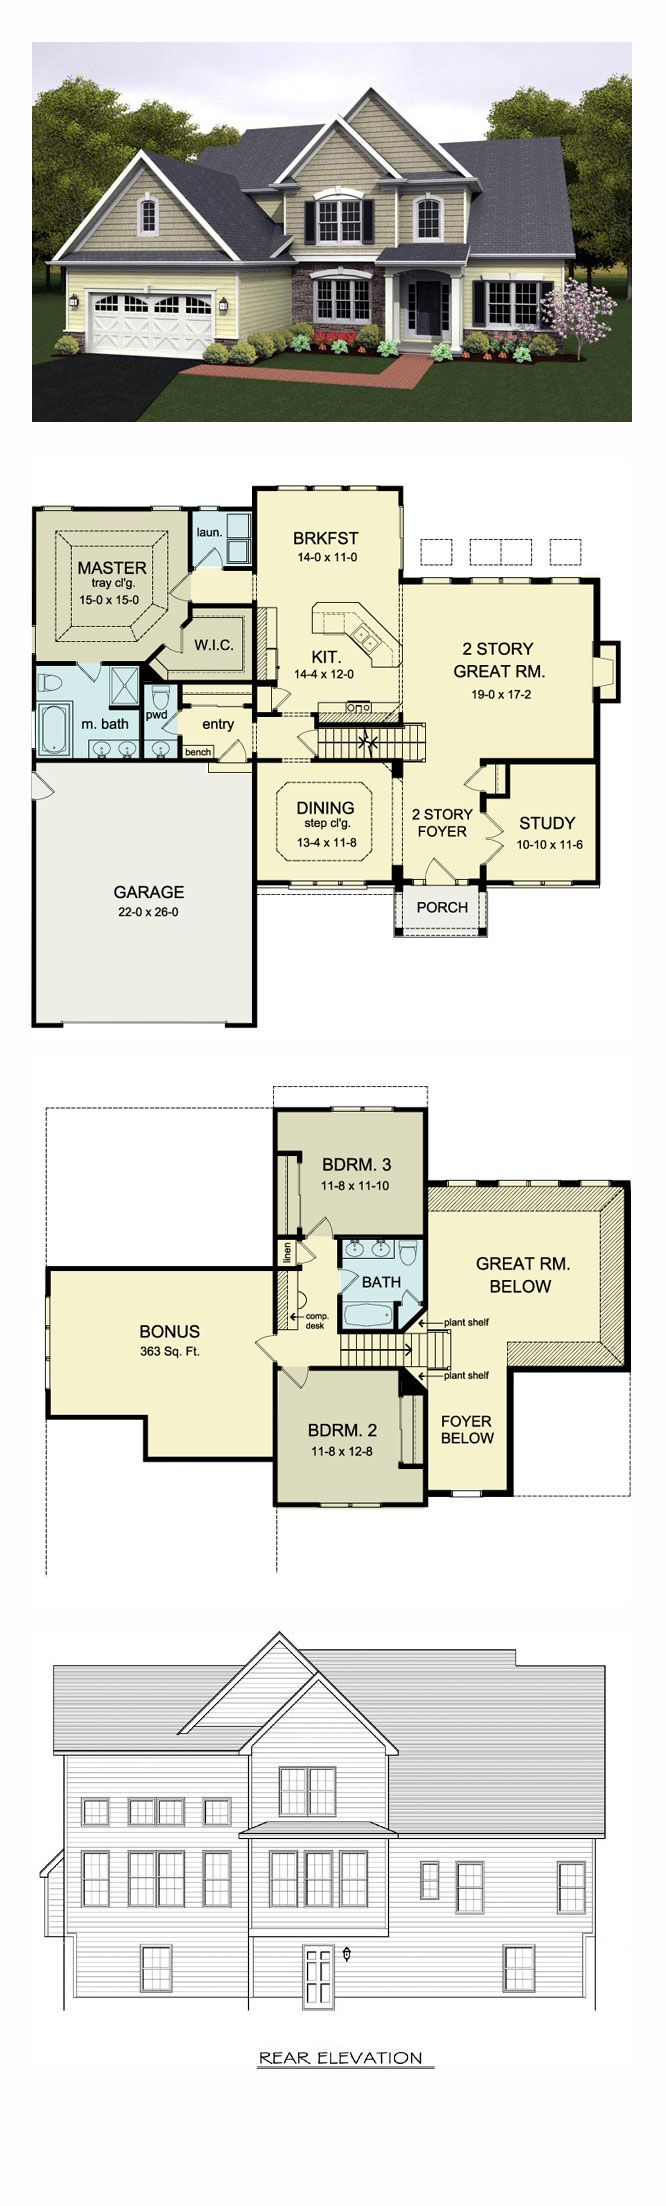 Best 25 House Blueprints Ideas On Pinterest Floor Plans Plans And 4 Bedroom